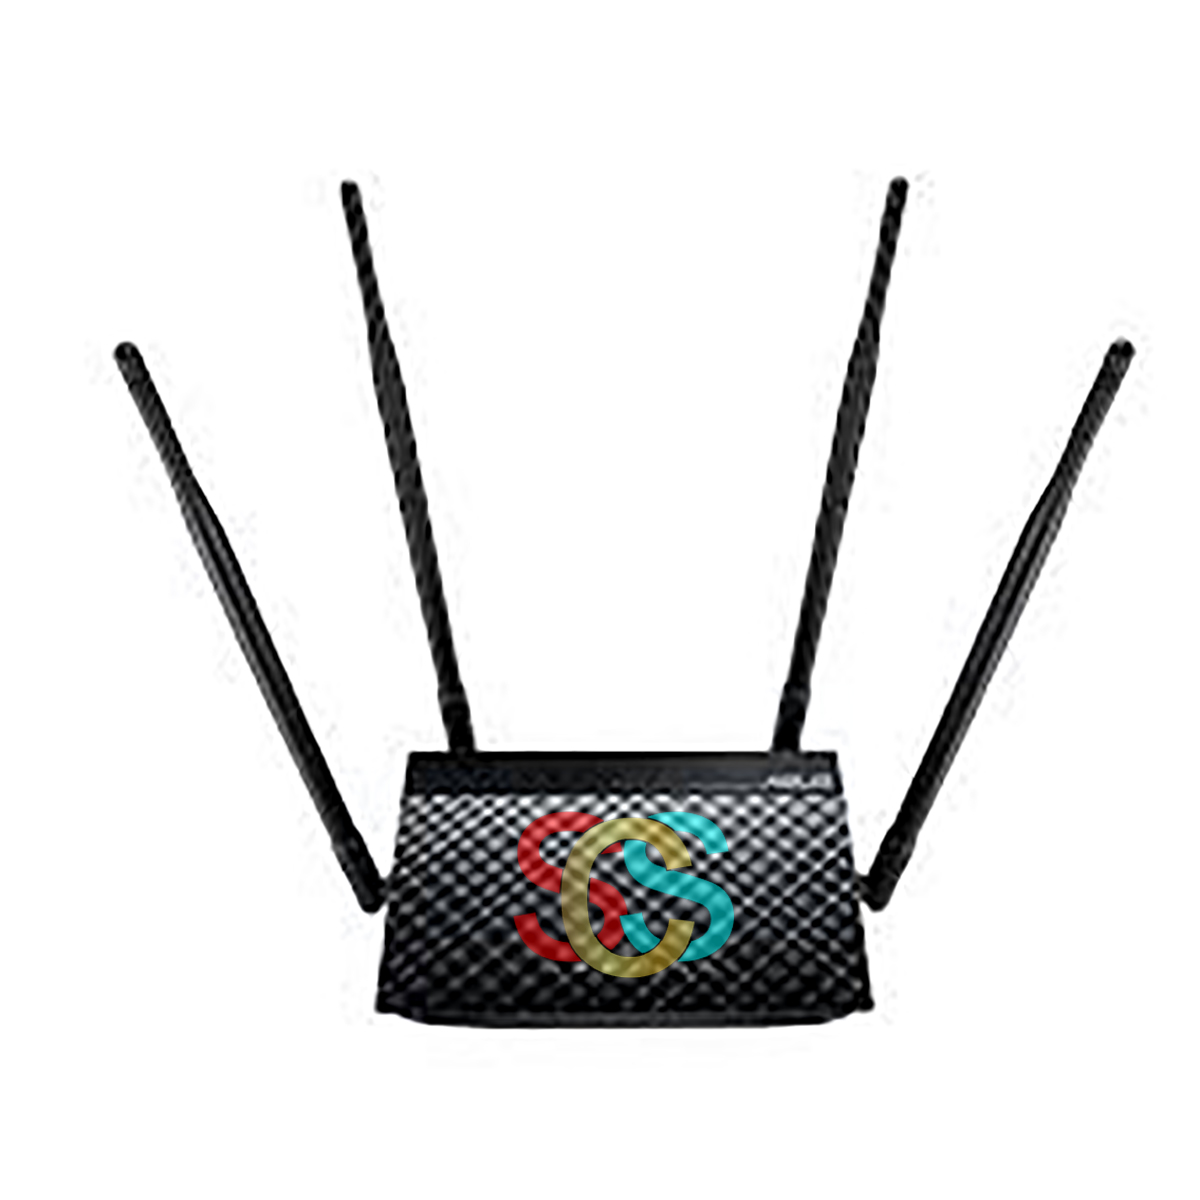 Asus RT-N800HP 800 Mbps Gigabit Single-Band Wi-Fi Router